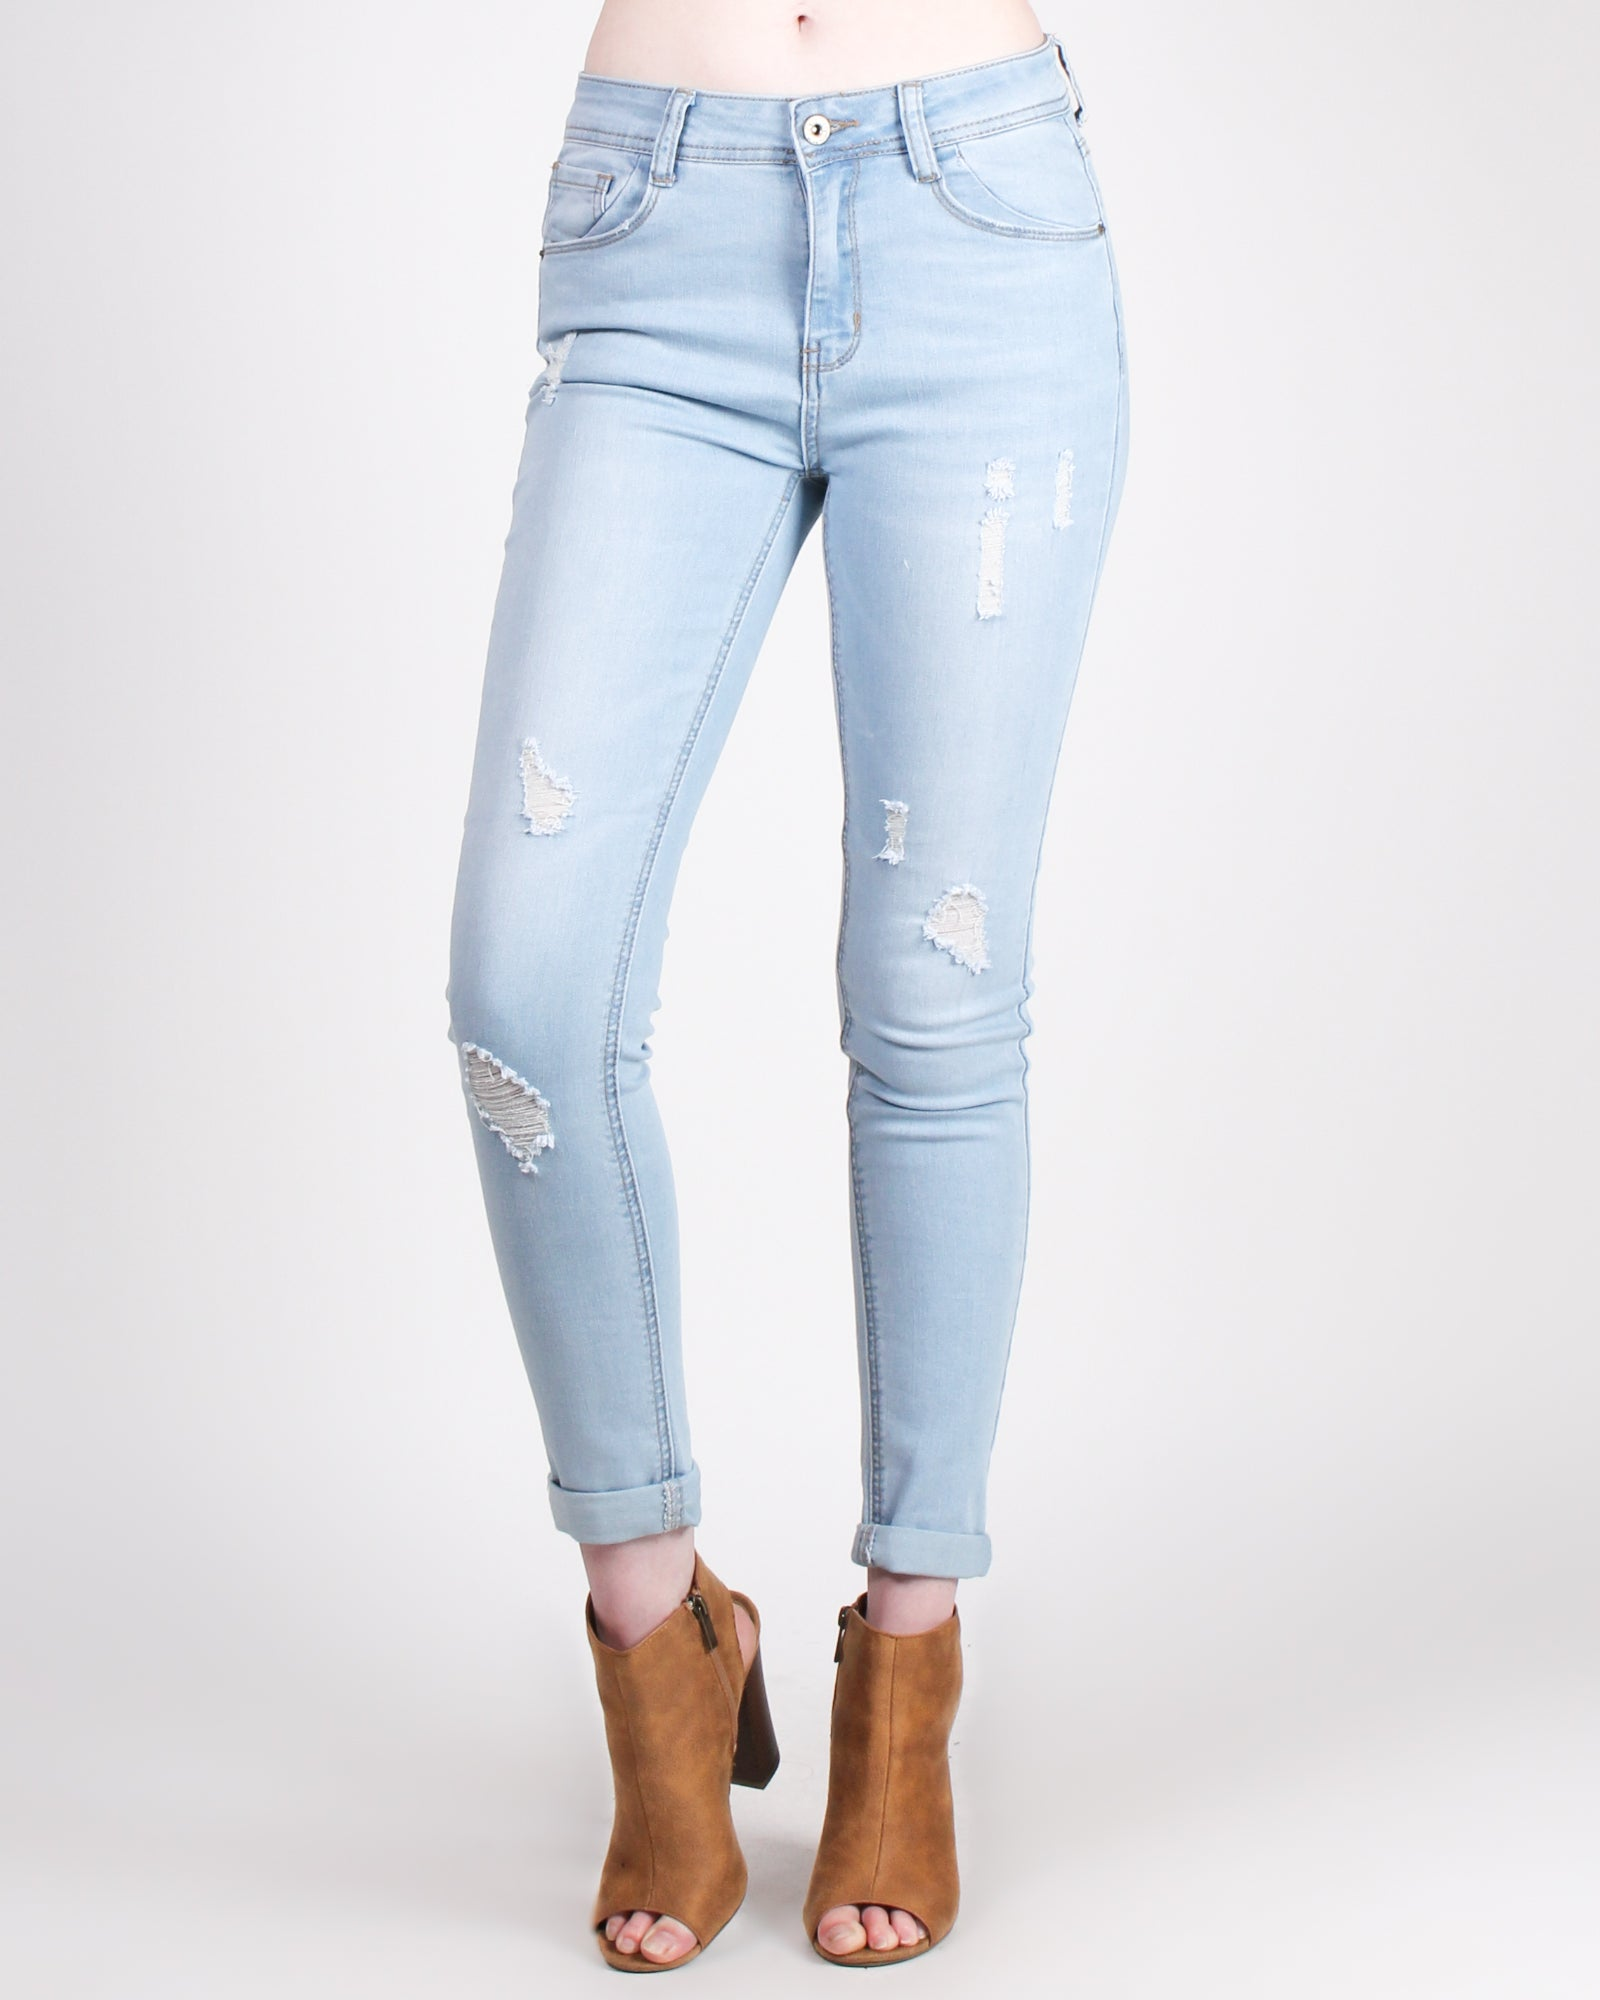 The Perfect Fit Denim Jeans (Light)